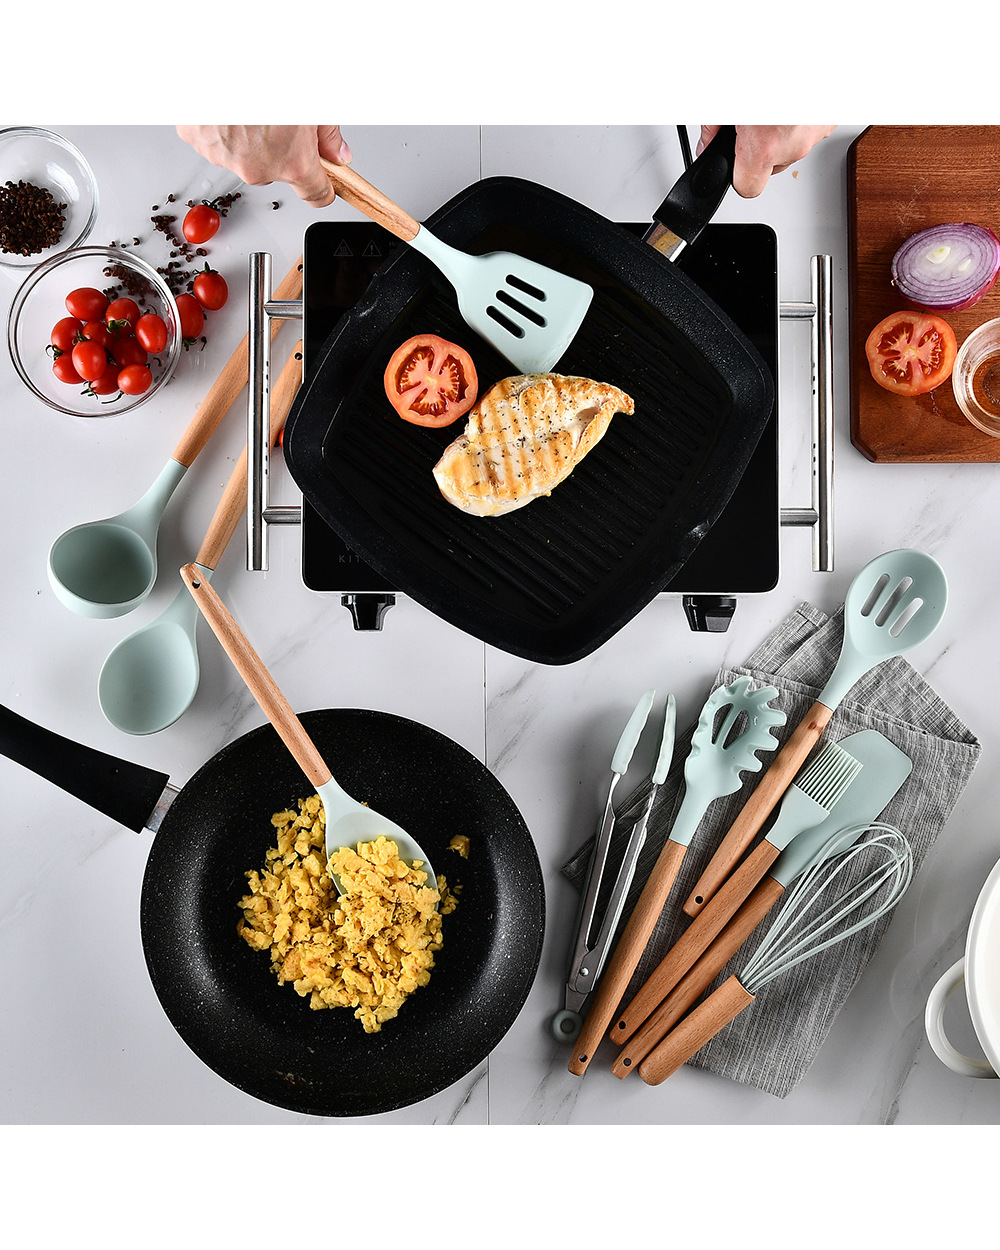 Silicone Cooking Utensils  Silicone Cooking Utensils 2